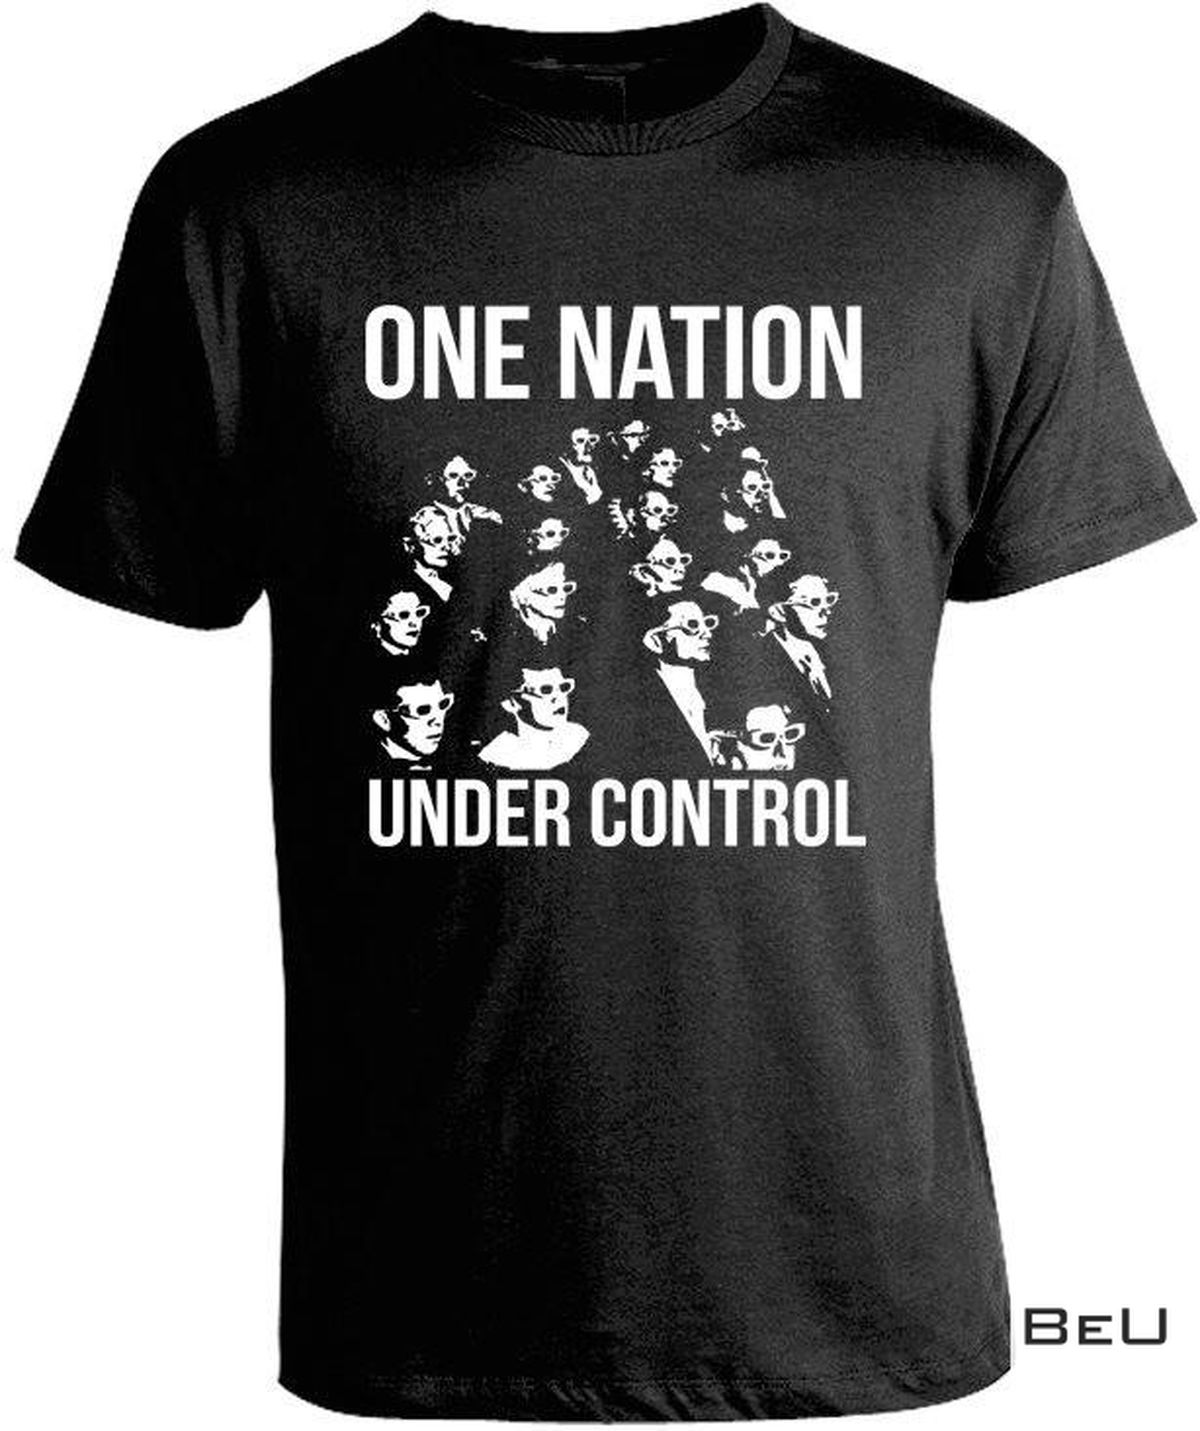 One Nation Under Control Shirt